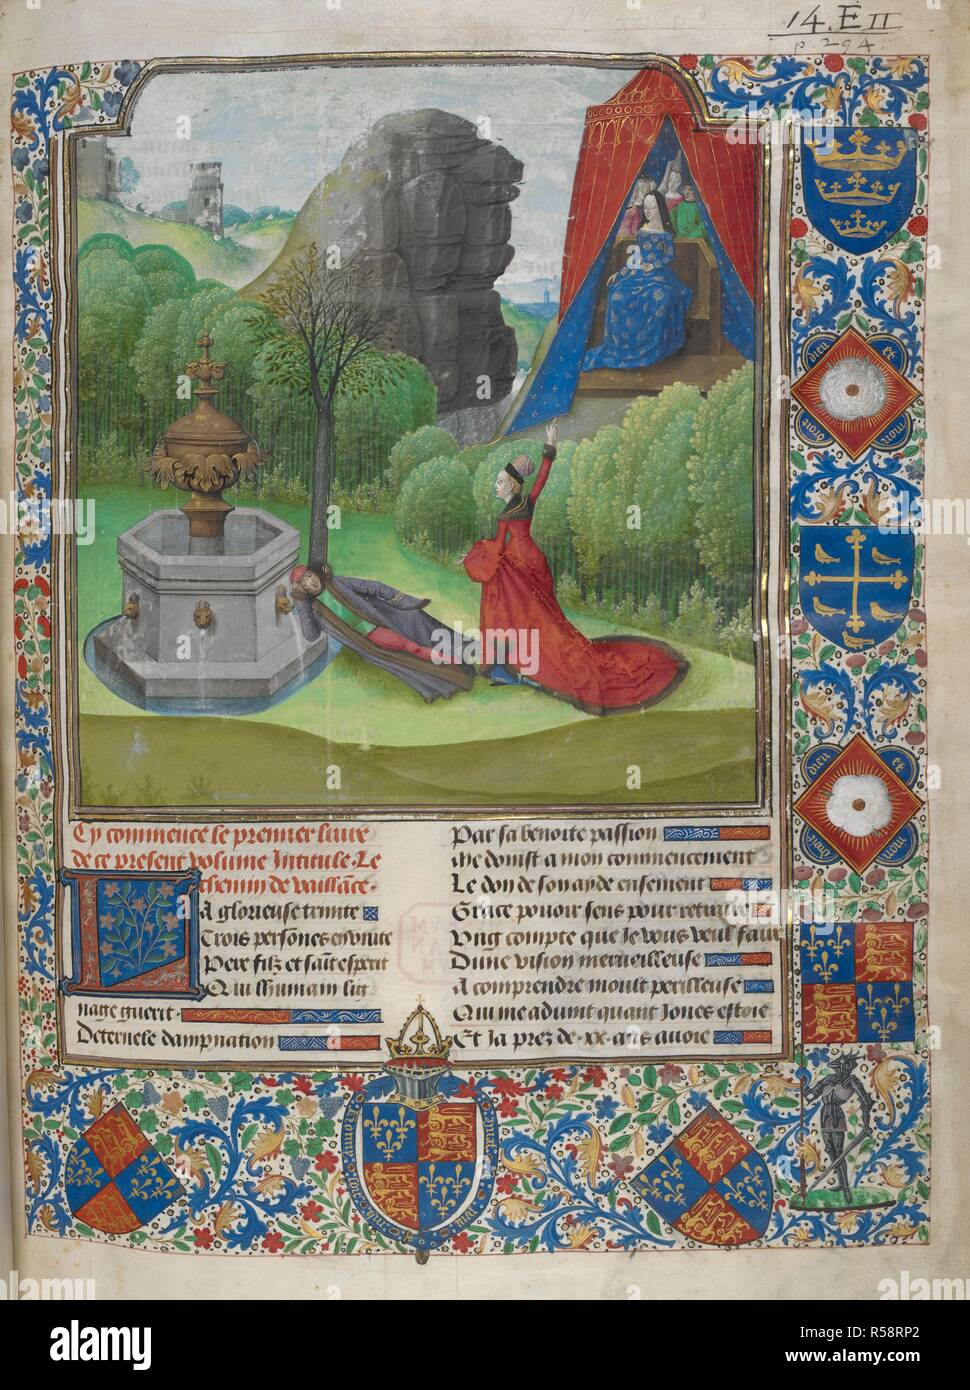 Miniature of Nature appearing to the author, Jean de Courcy, in a dream and showing him the lady Vaillance, at the beginning of book 1. A full border containing the royal arms of England on a banner held by a knight and on a shield encircled by the Garter with the motto 'Honny soit qui mal y pense', and surmounted by a crowned helm with mantling in Edward's colours of red and blue. Two shields with the same arms differenced, for the king's two sons; lozenges bearing a white rose of the York family with the Yorkist badge, 'Dieu et mon droit', a shield with the arms of Edmund (three crowns) and  - Stock Image